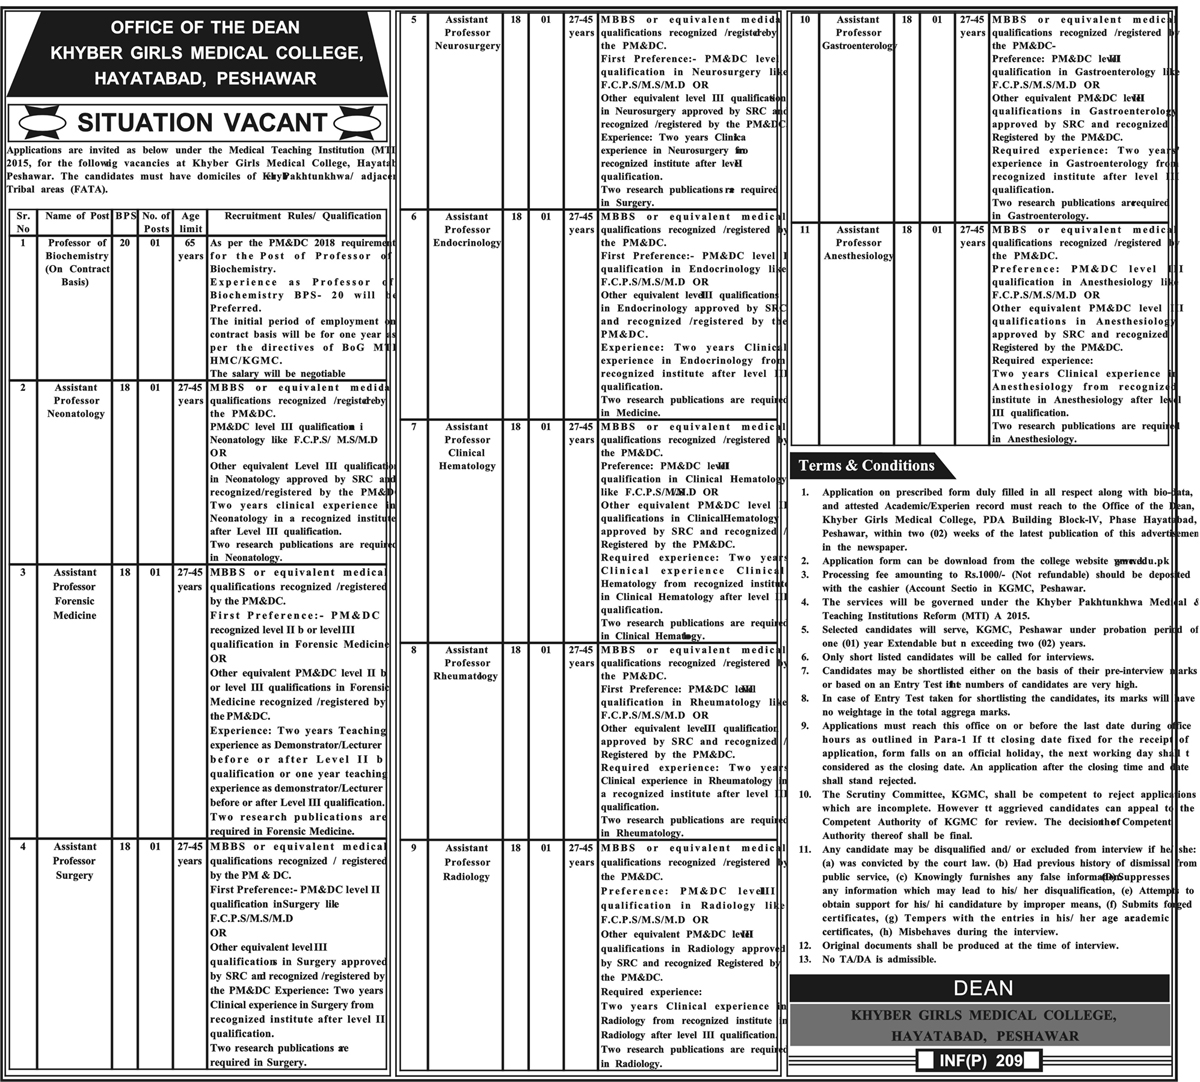 Jobs Vacancies In Khyber Girls Medical College 16 January 2019